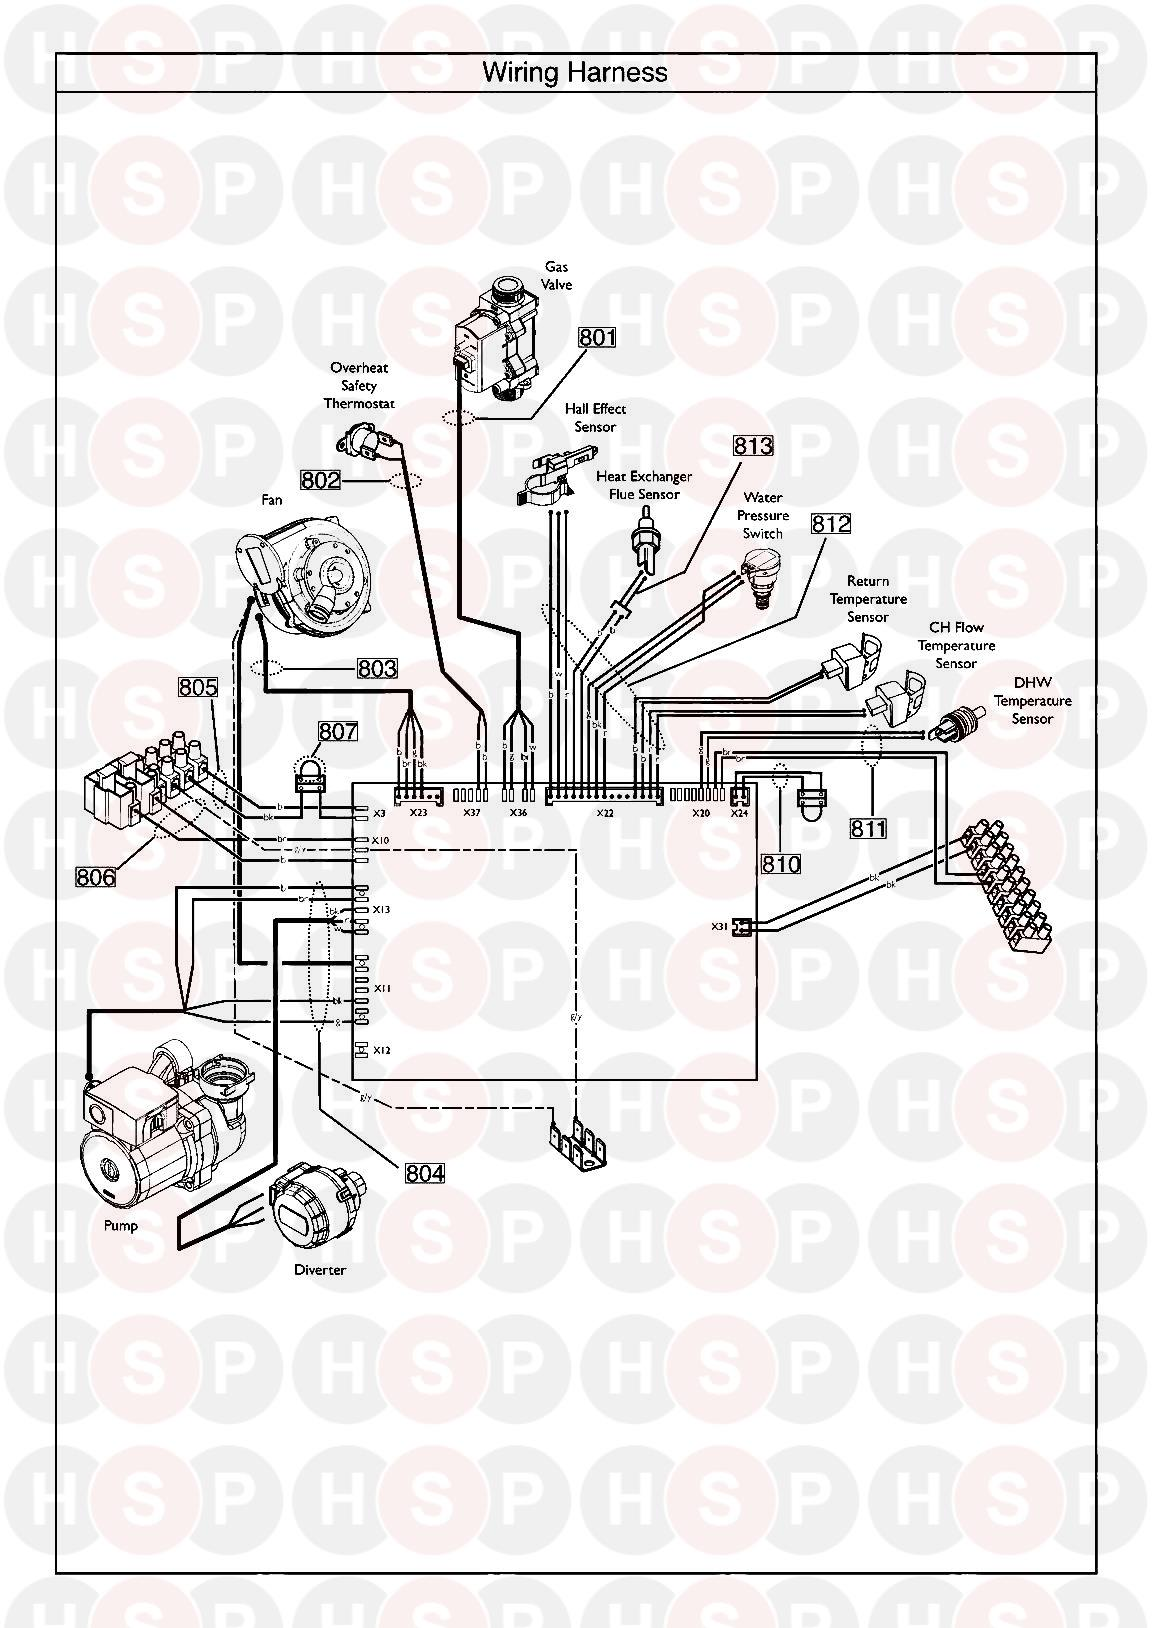 Baxi Neta Tec 28 Ga Wiring Harness Diagram Heating Spare Parts 100 Johnson Click The To Open It On A New Page